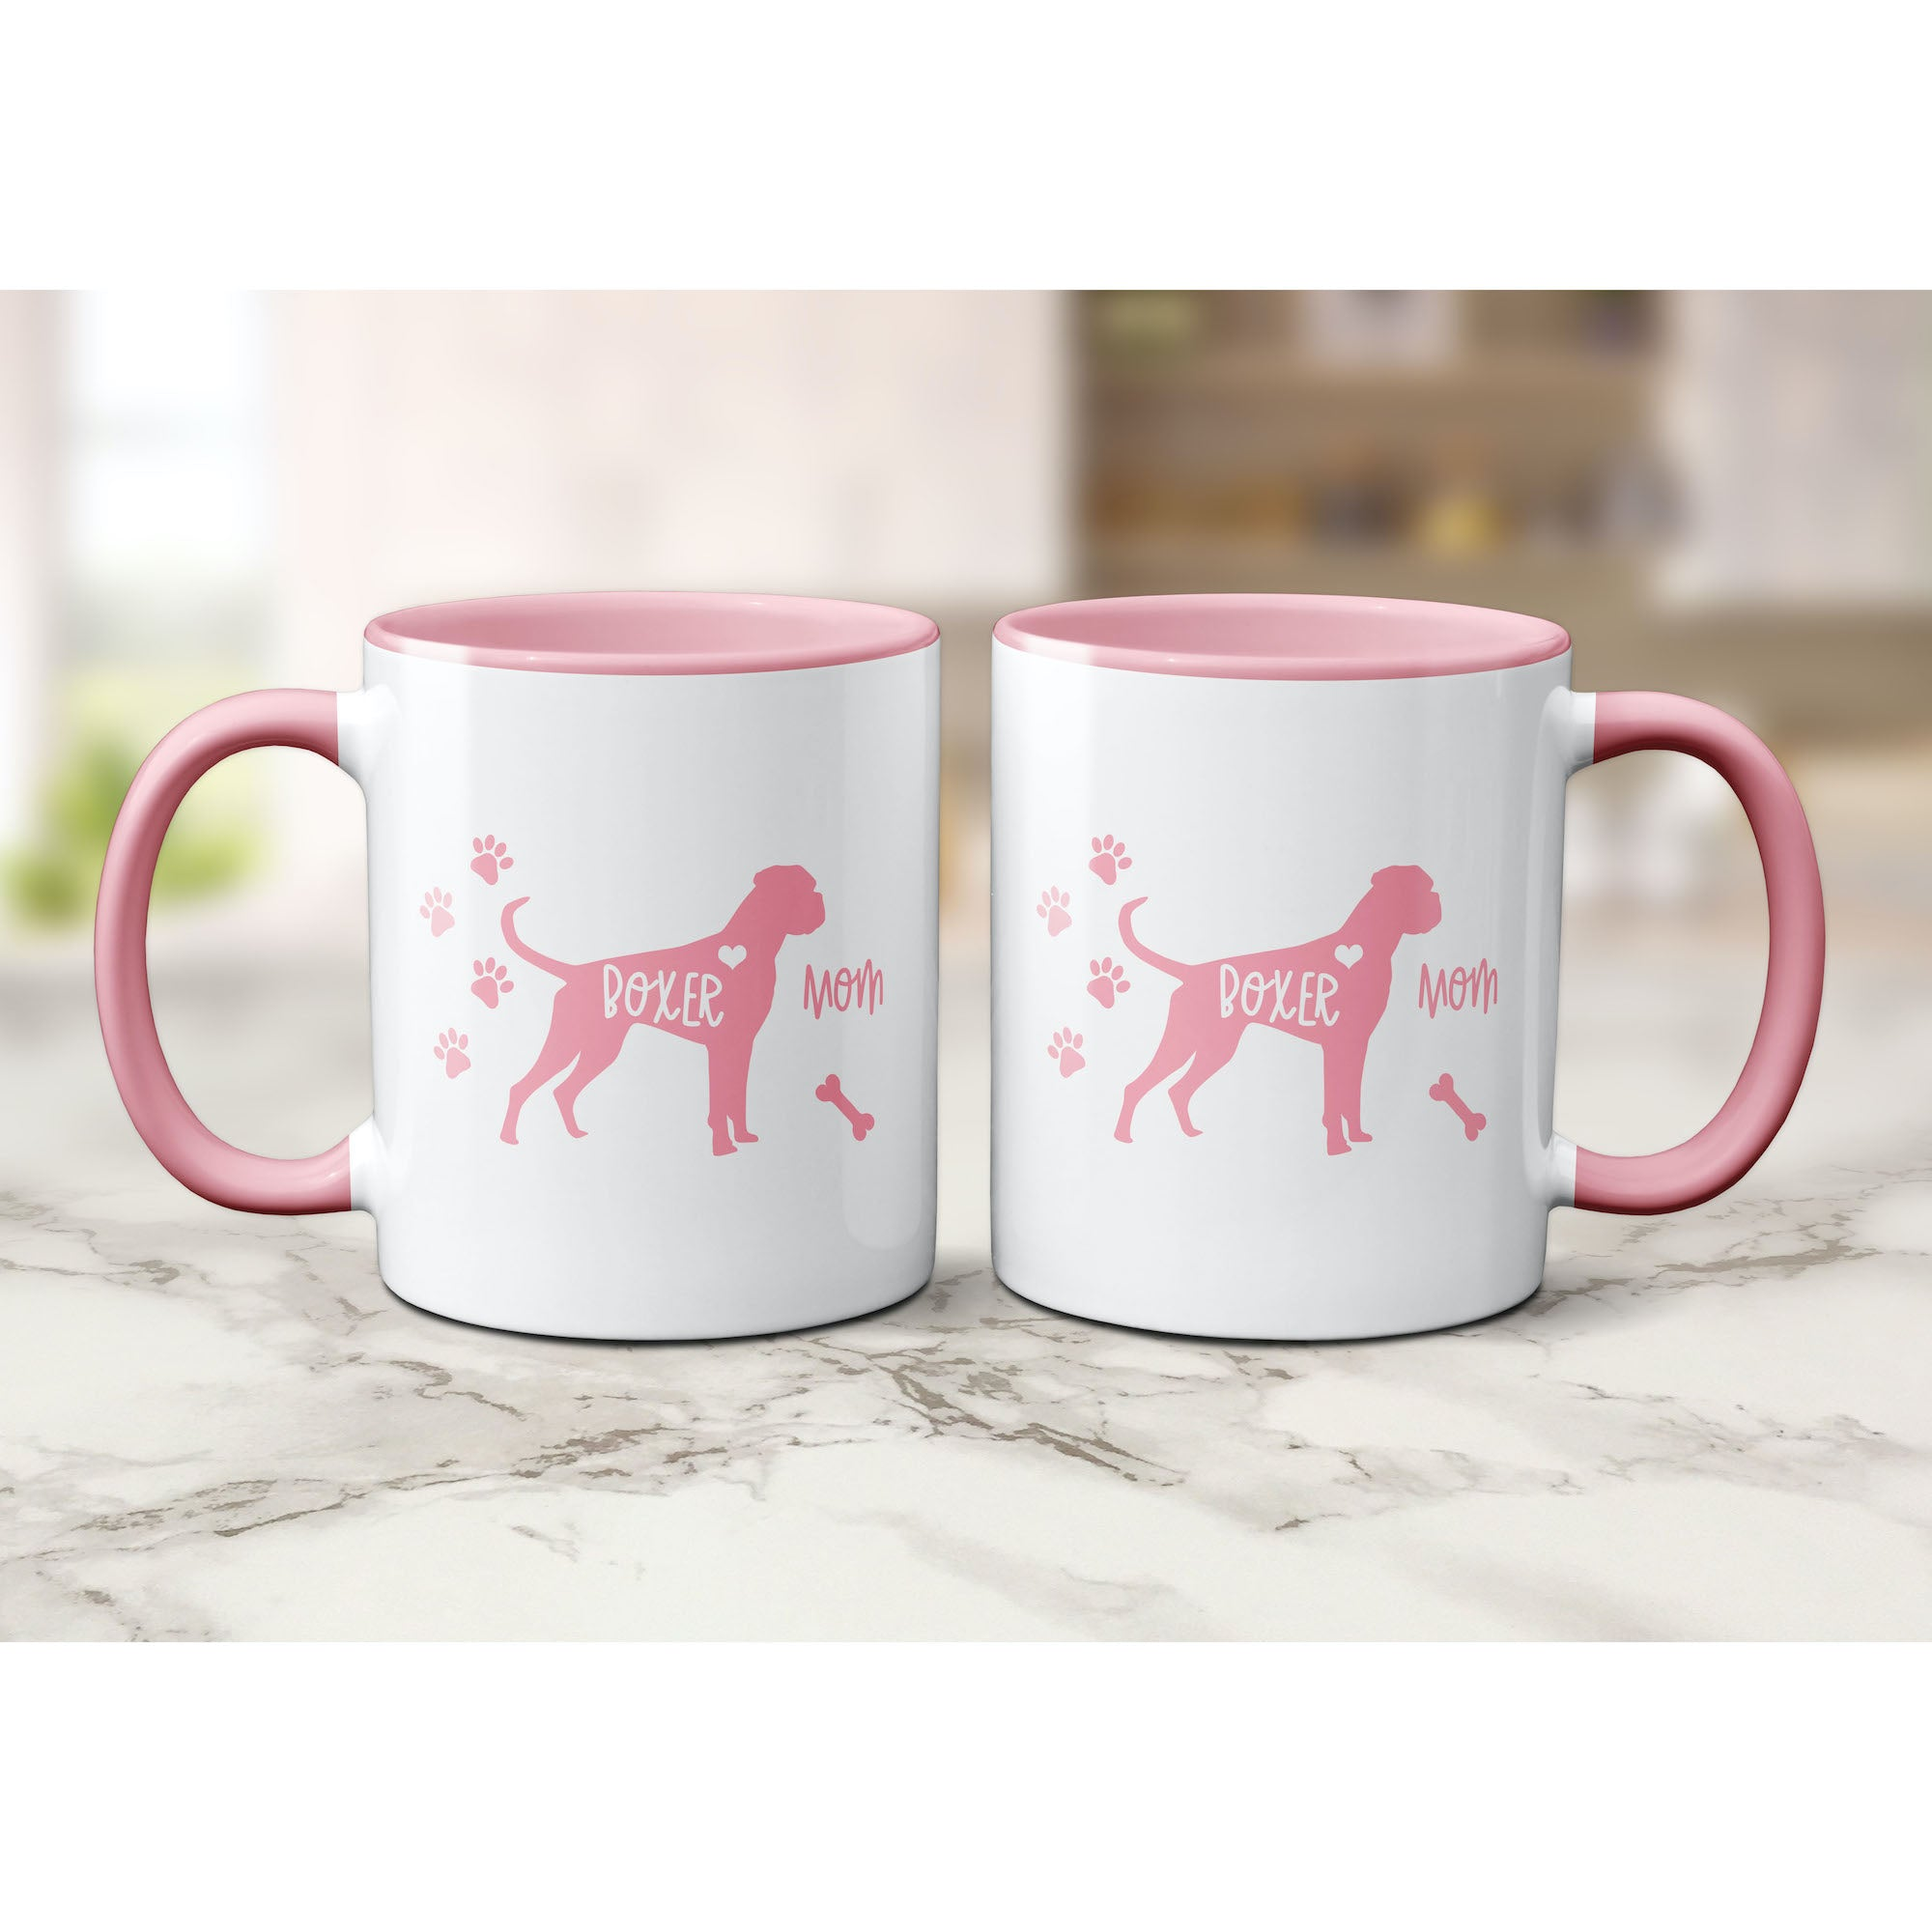 Funny Boxer Mug, Boxer Mom, Boxer Lover Gift, Cute Boxer Graphic, Coffee Mug